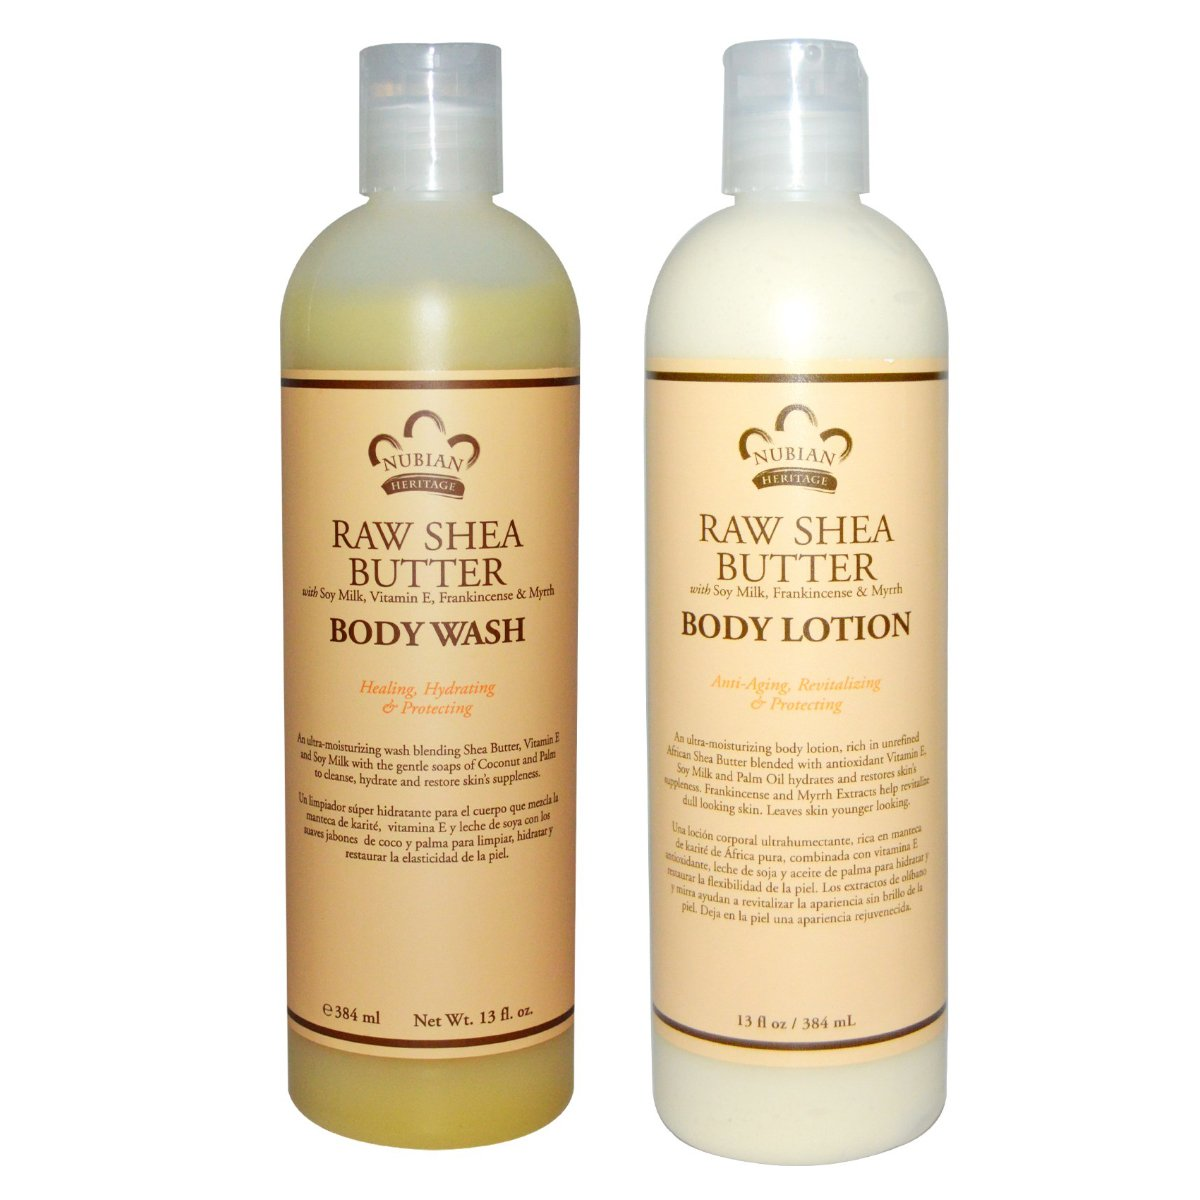 Amazon.com : Nubian Heritage Raw Shea Butter Body Wash and Body Lotion Bundle, With Vitamin E, Soy Milk, Frankincense, Myrrh and Palm Oil, 13 fl oz each : ...